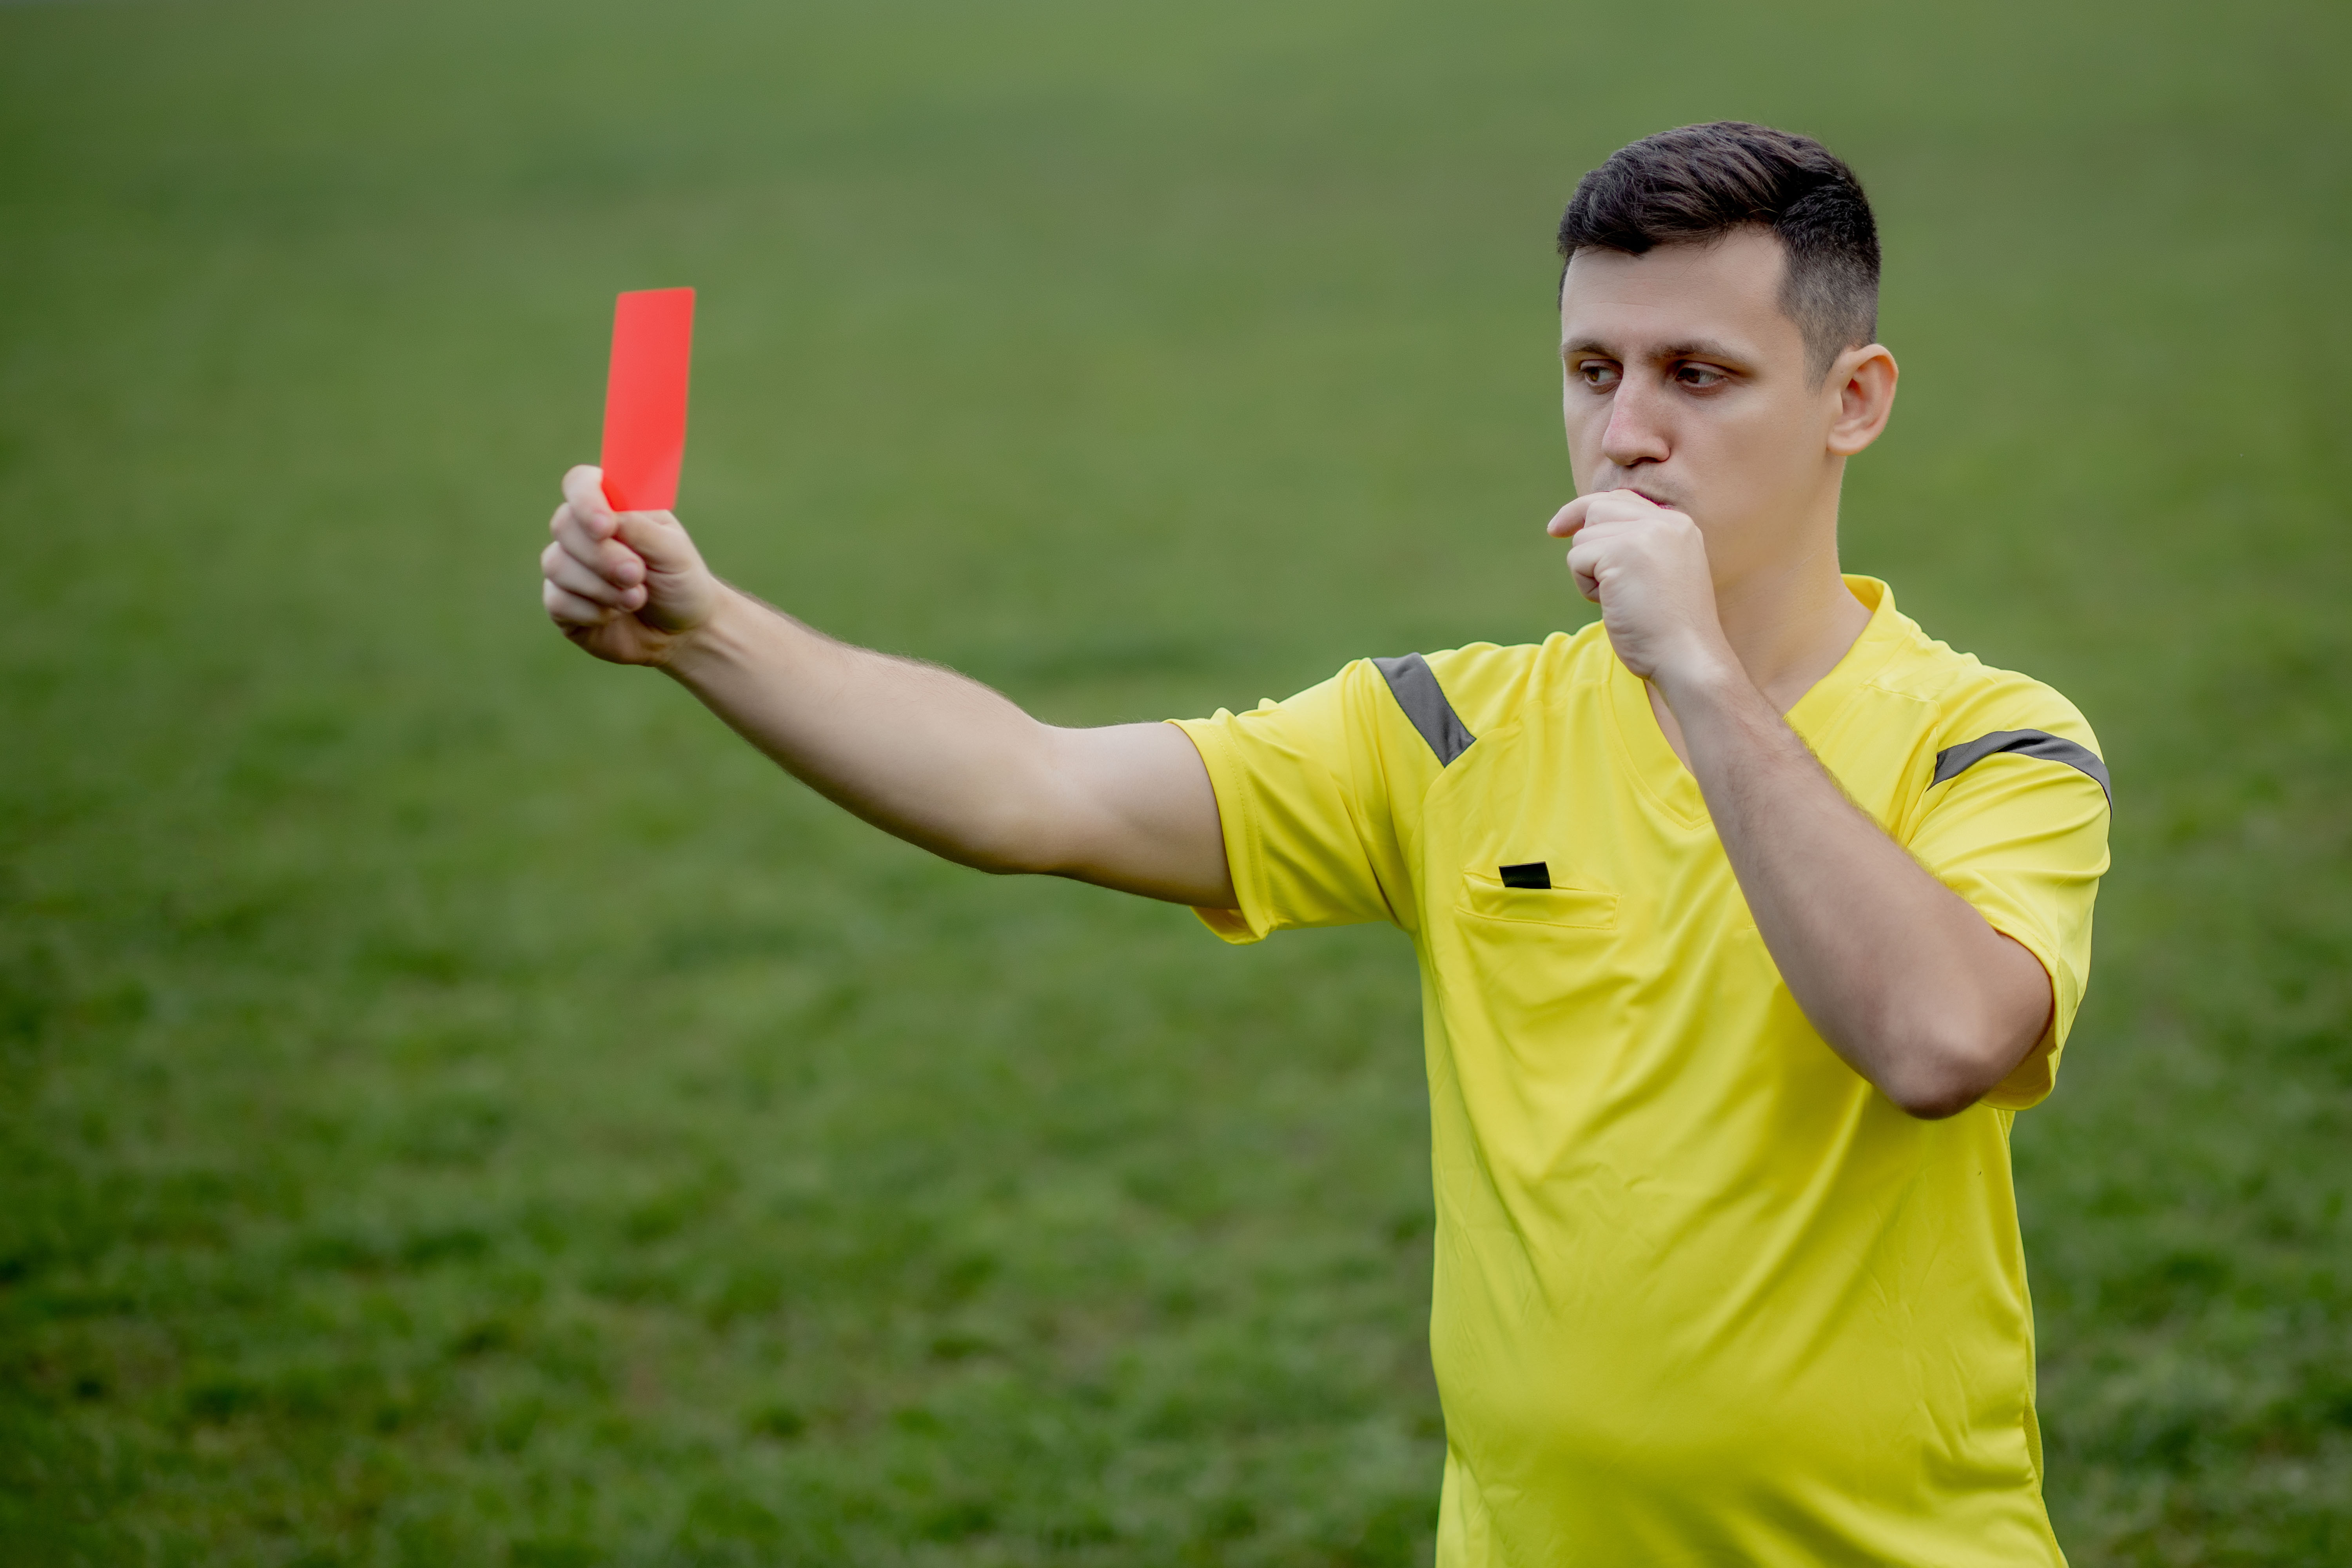 A referee enforcing football rules